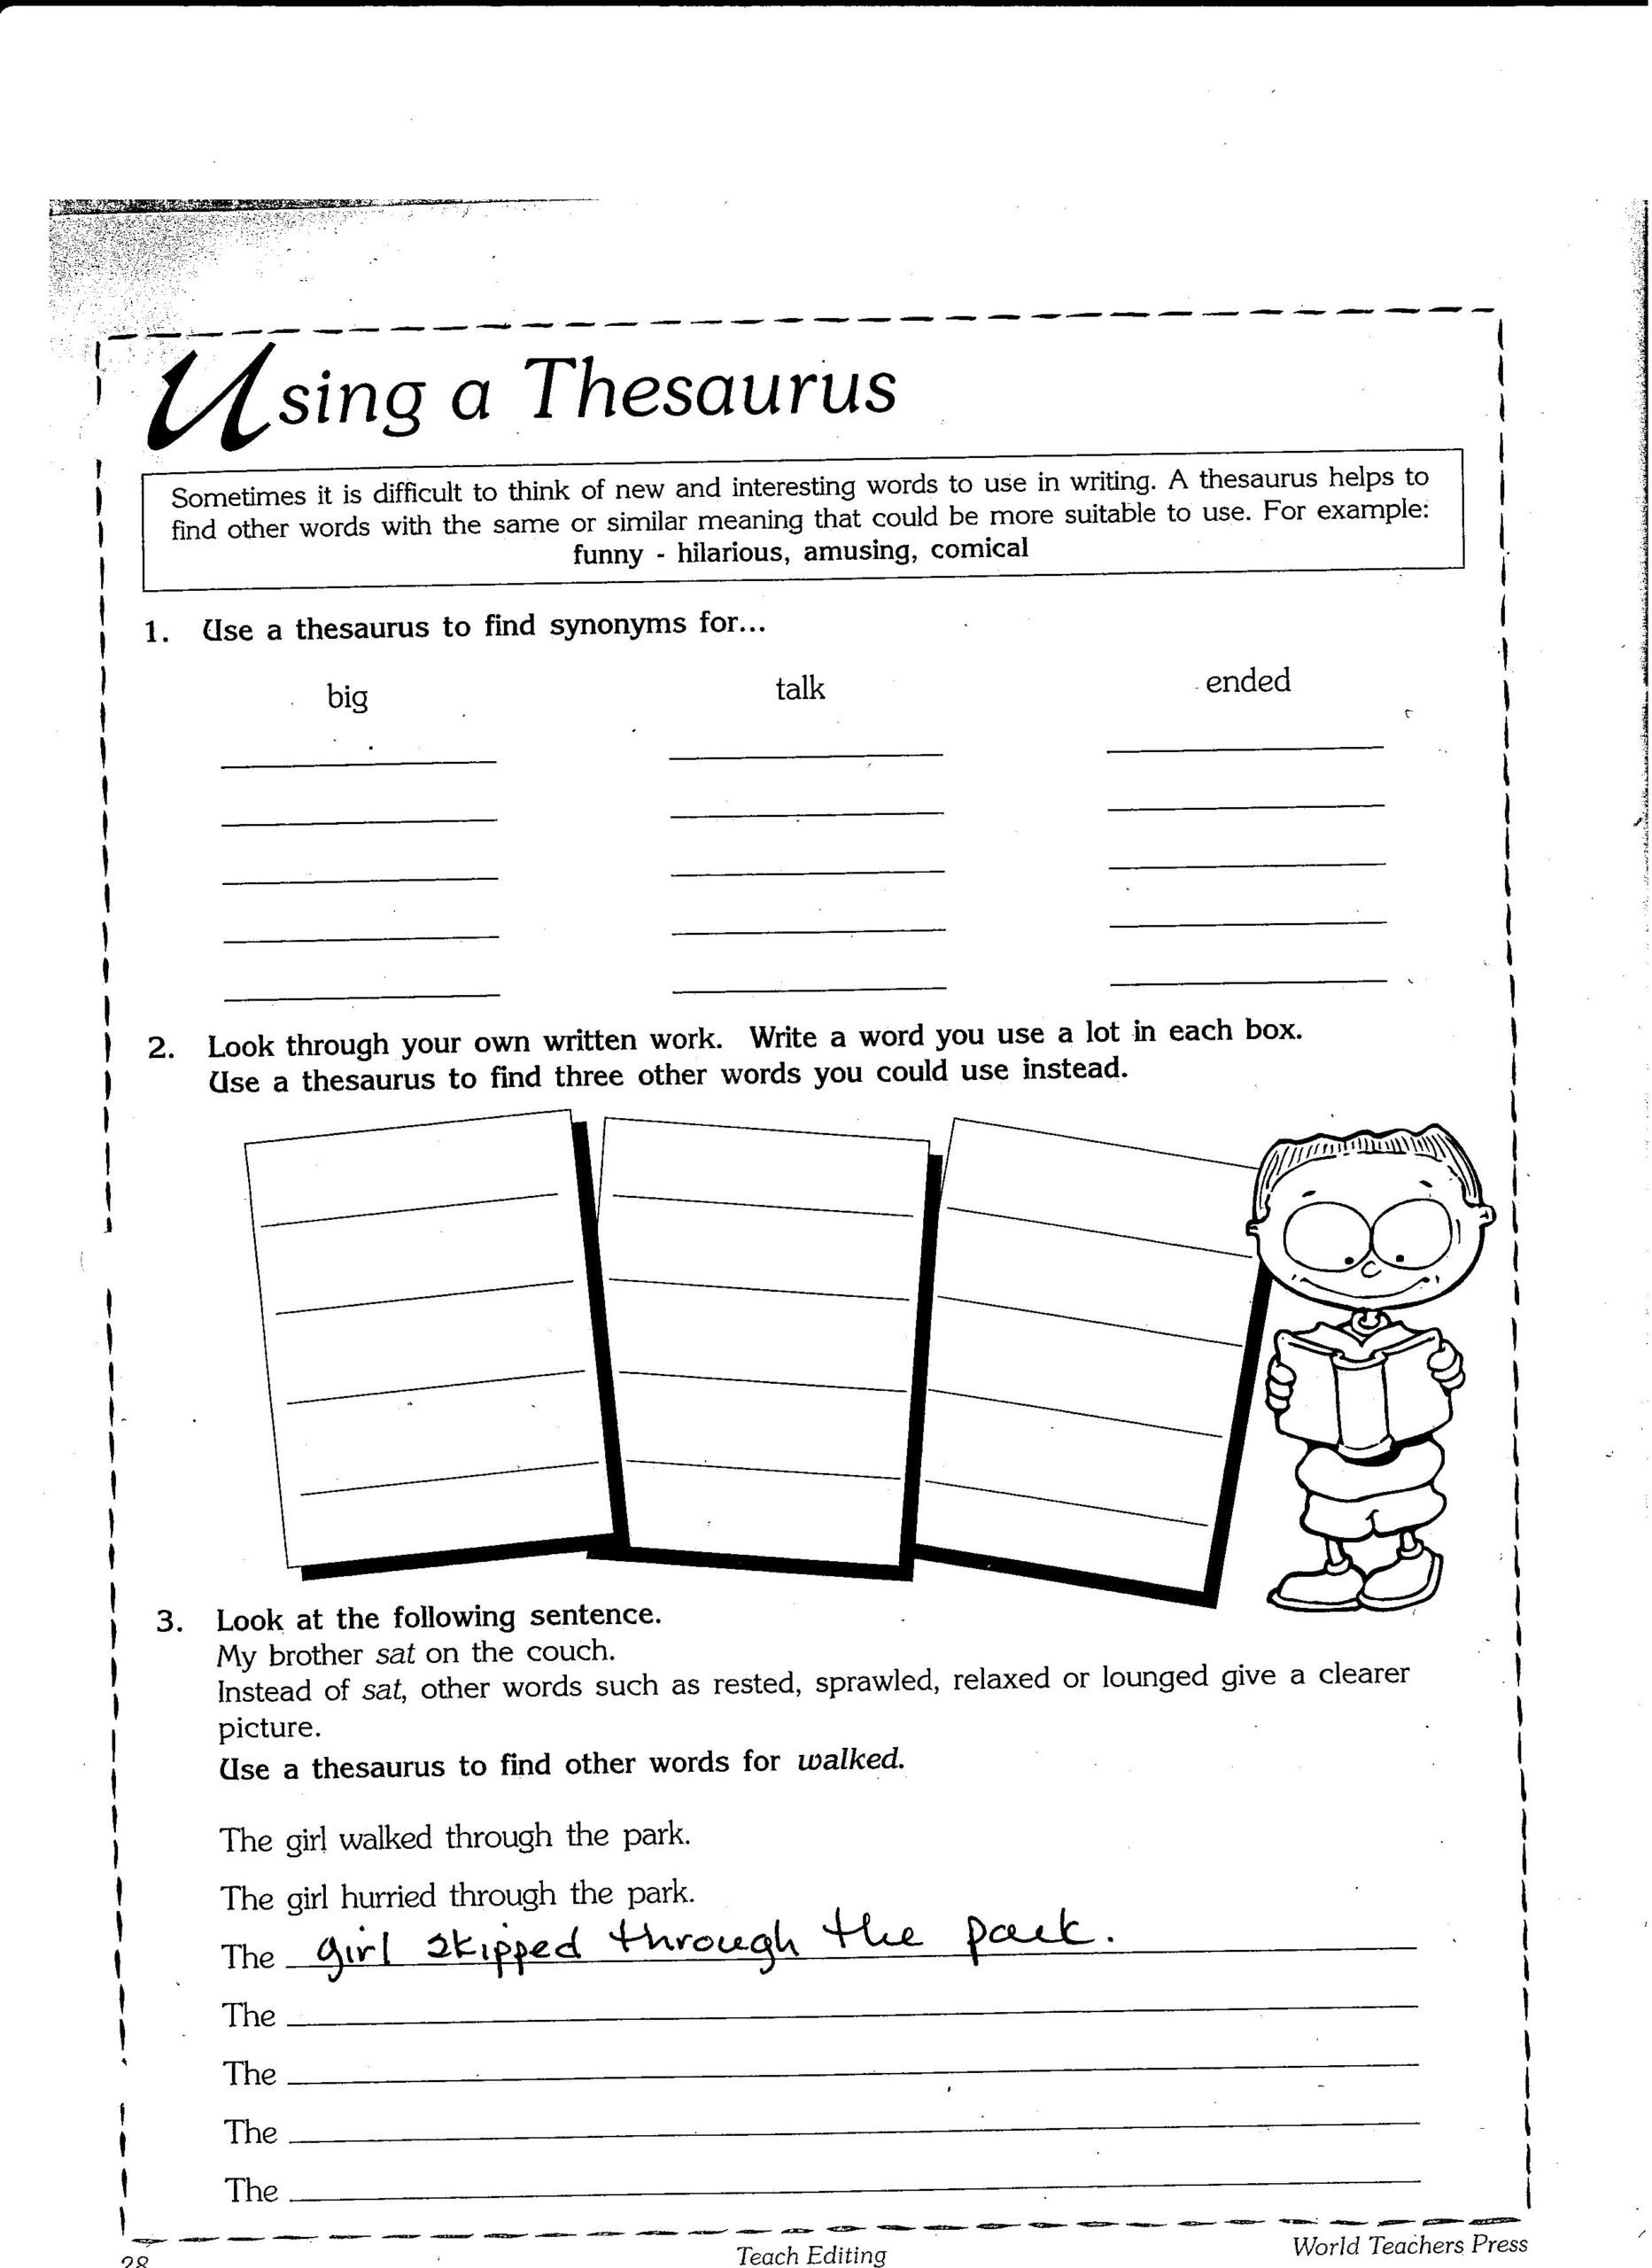 Editing Worksheet Middle School Cool Math Games for Kids Best Coloring Pages to Print Free